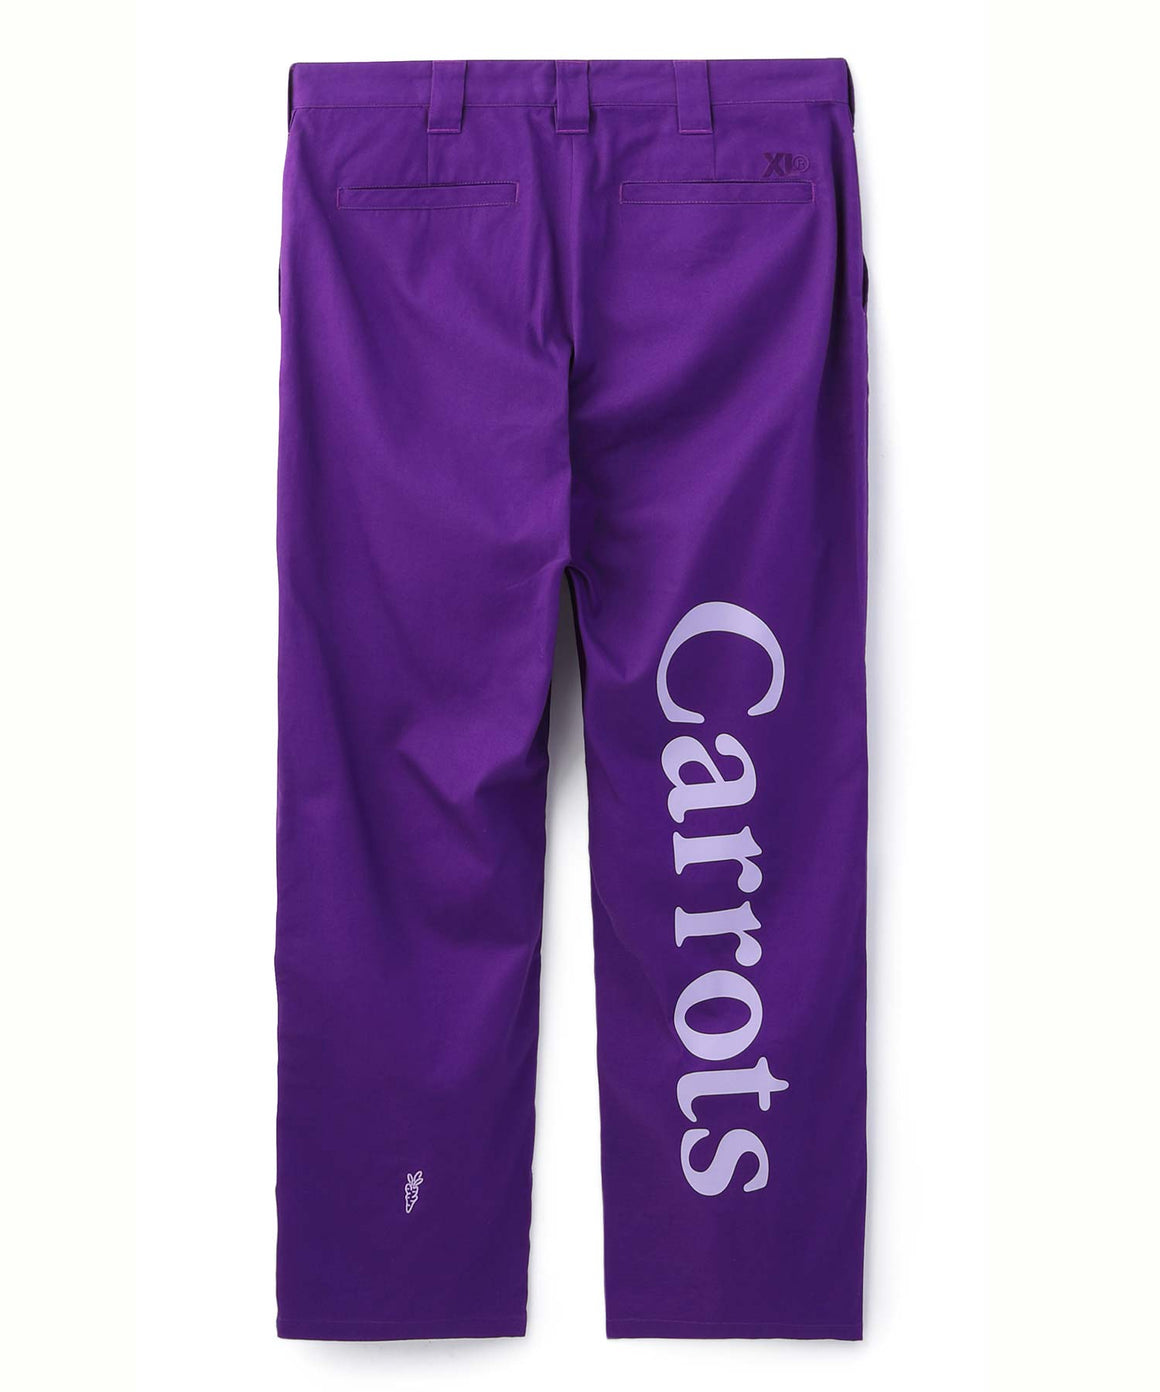 XCARROTS3 PRINTED WORK PANT